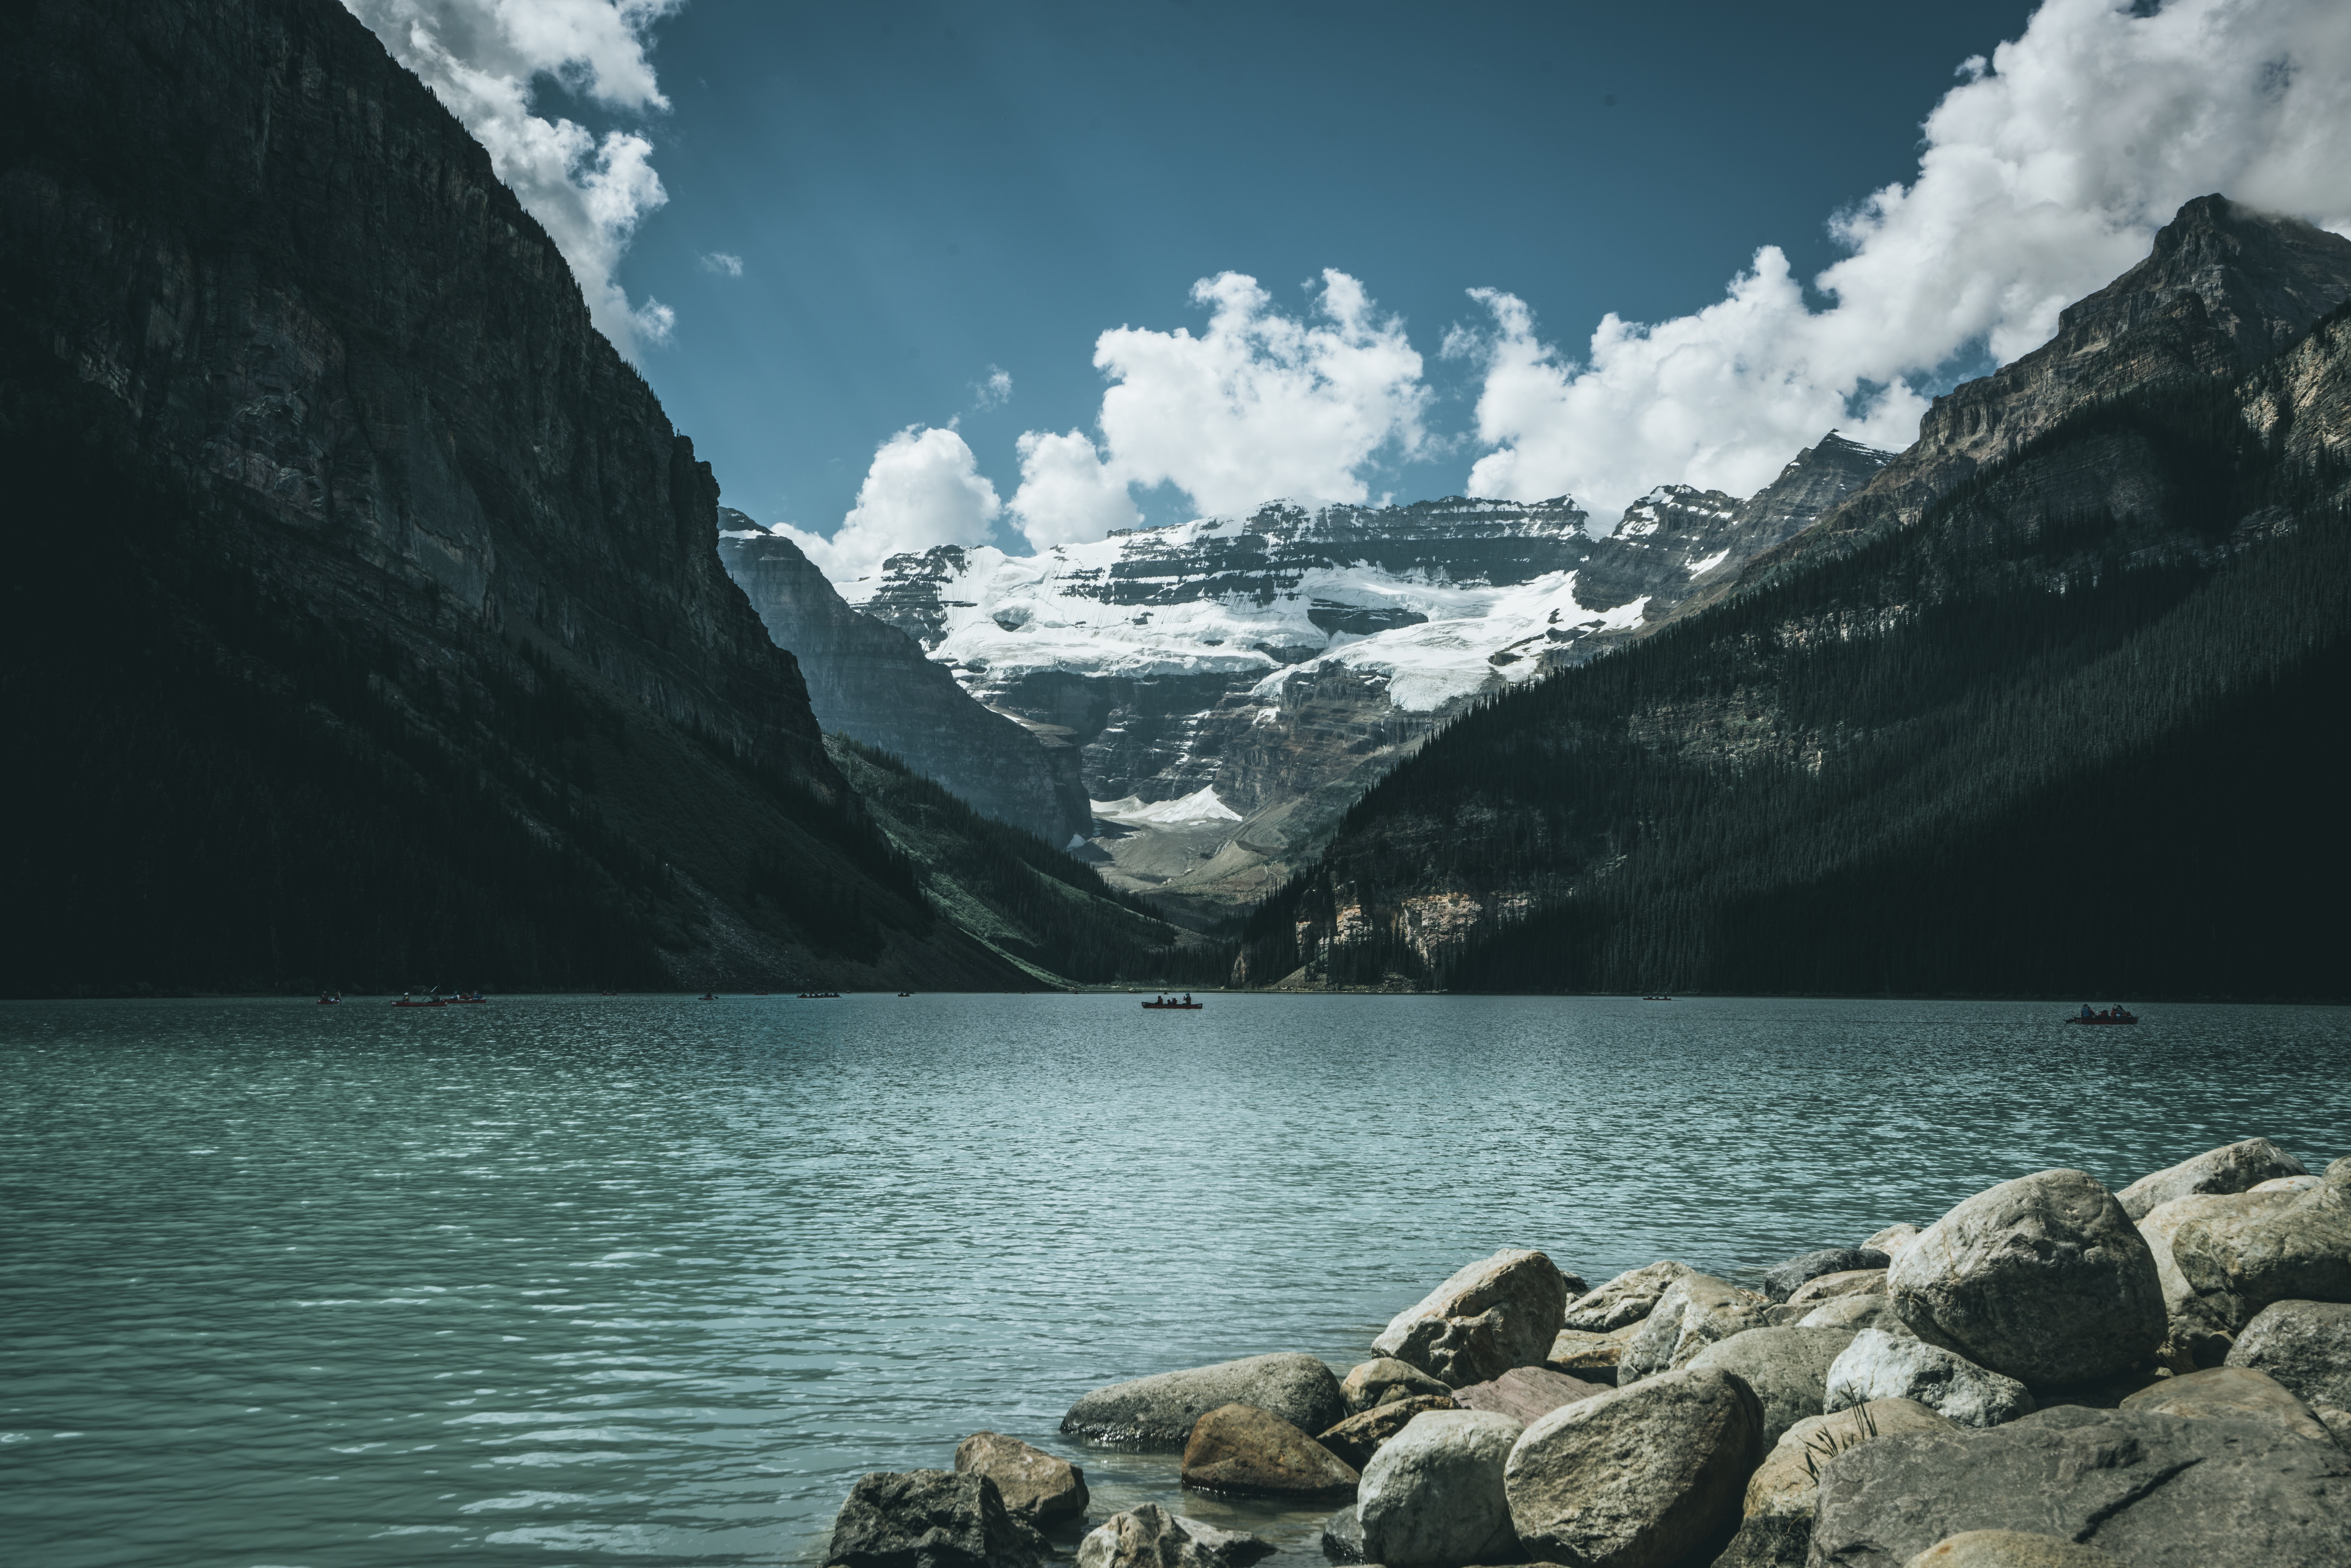 landscape photography of body of water between mountains